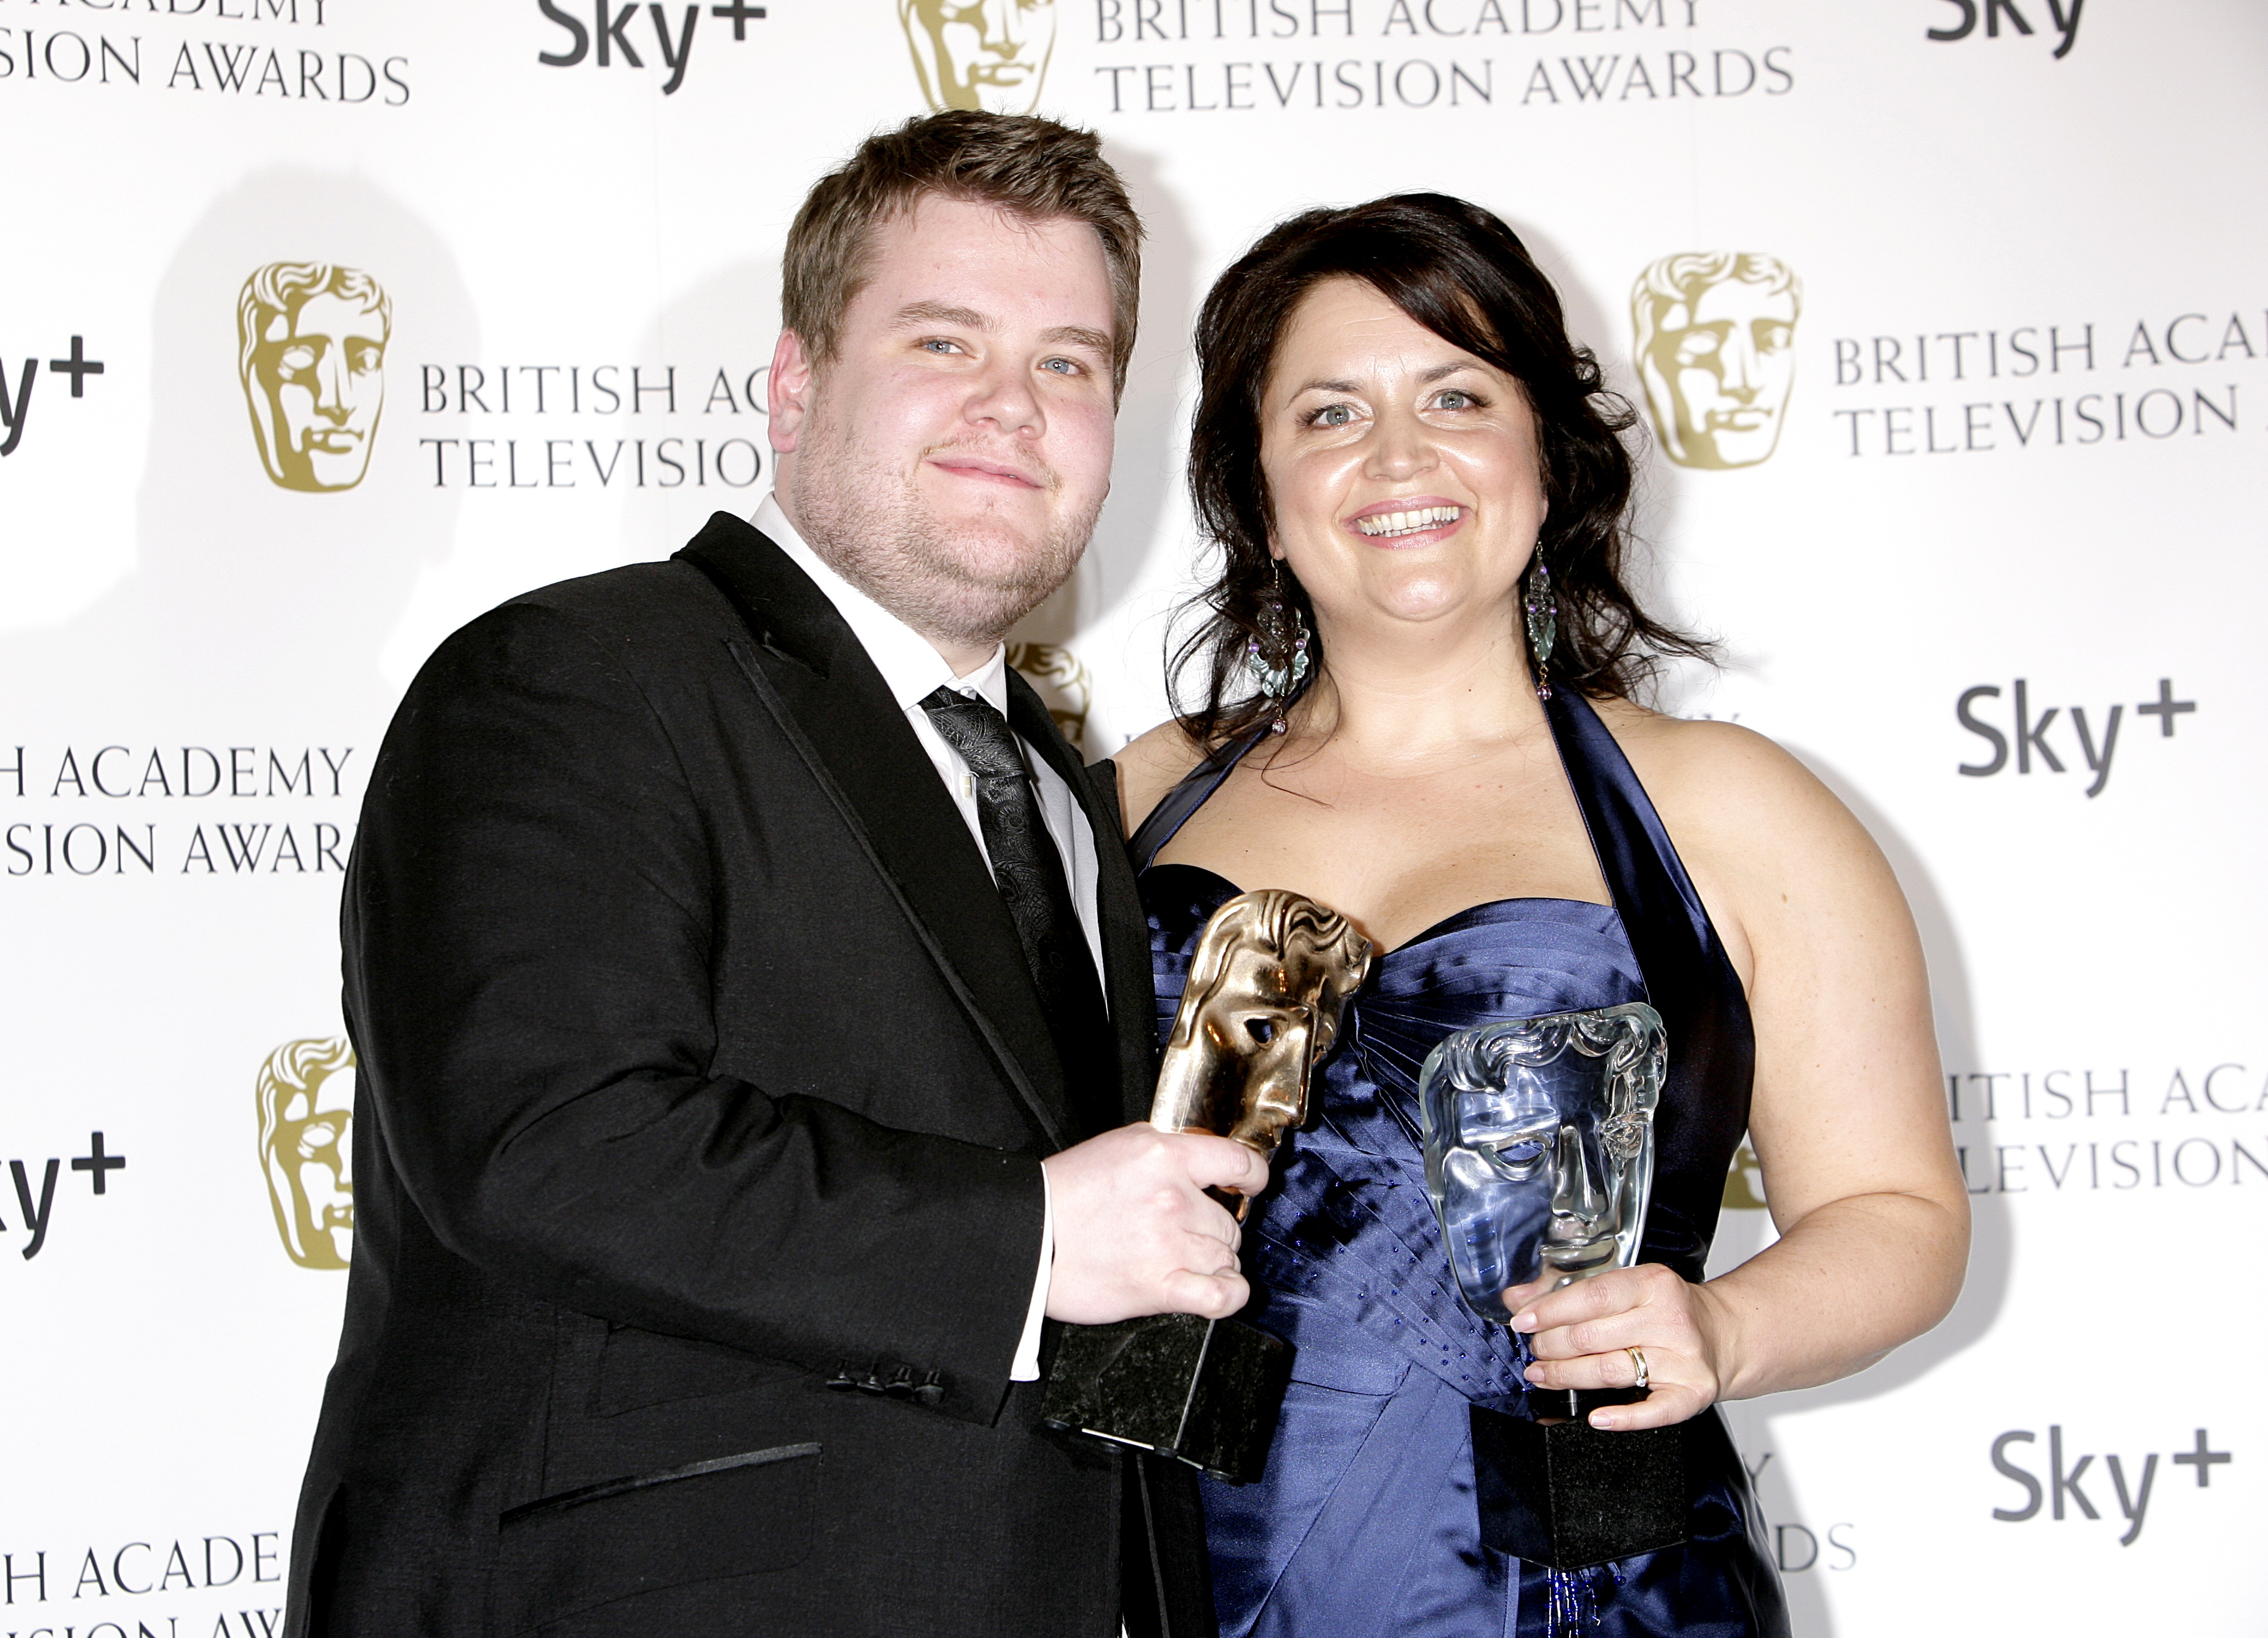 James Corden and Ruth Jones with the Programme of The Year award received for Gavin And Stacey at the British Academy Television Awards at the London Palladium in 2008.